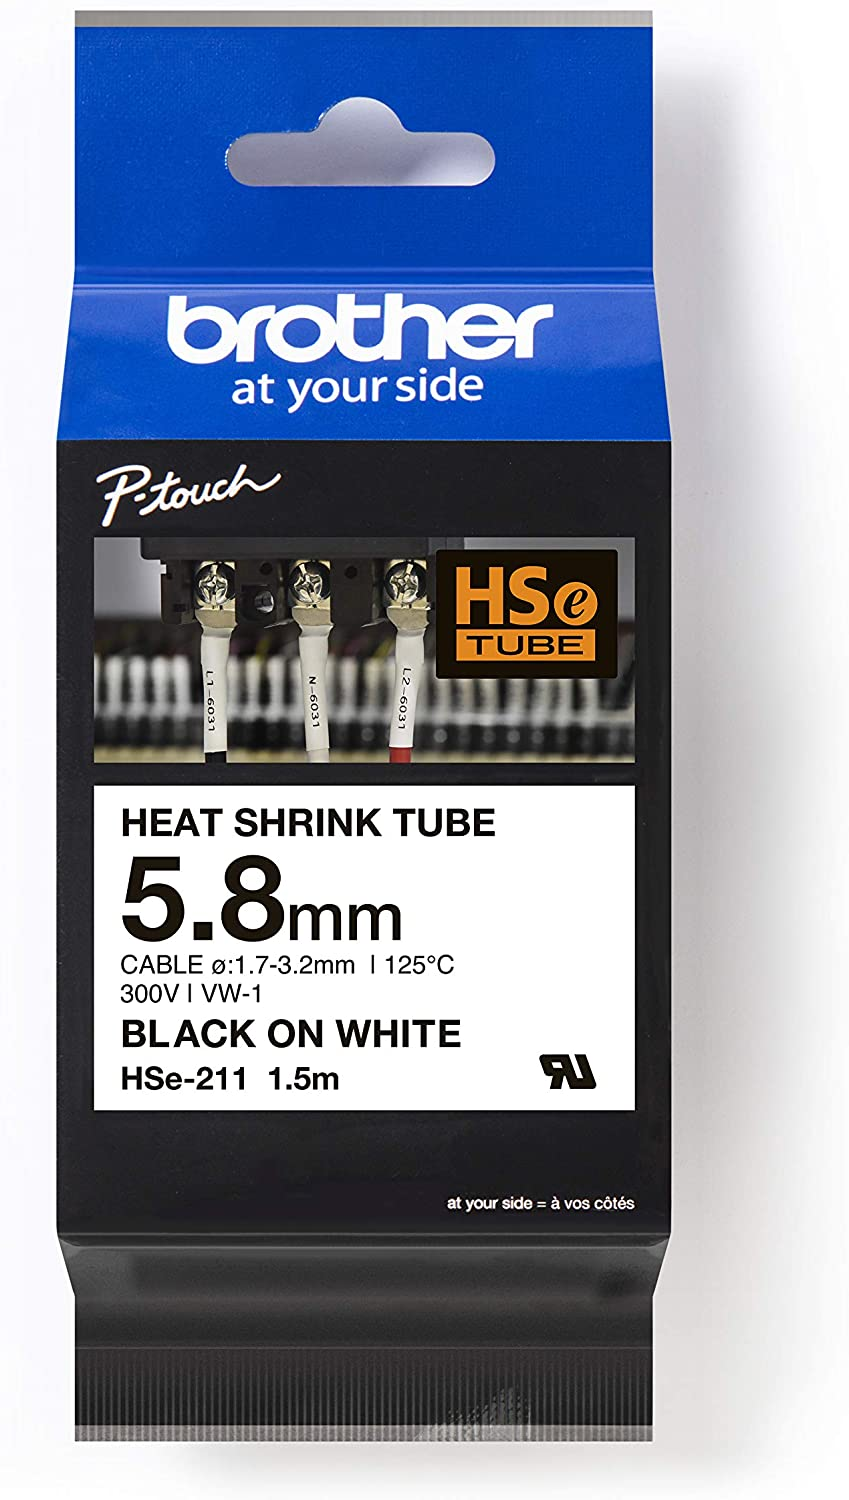 COMPATIBLE HEAT SHRINK SLEEVING TUBING FOR BROTHER P-TOUCH 12mm 231 BLACK WHITE